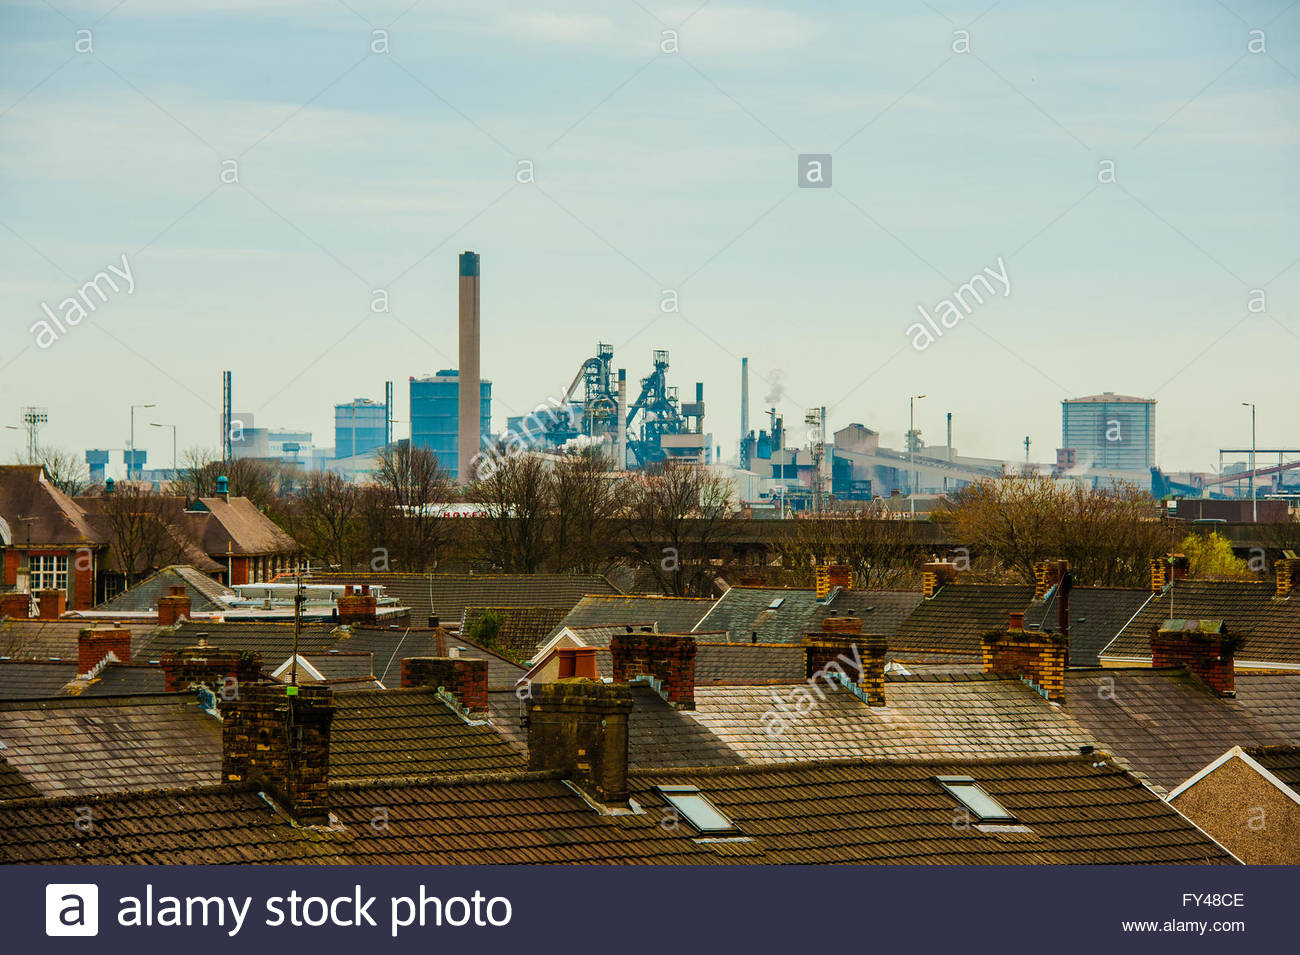 Port Talbot, Wales, UK 21st April 2016. A grey day over the town of Port Talbot looking at the Tata Steel Works Stock Photo